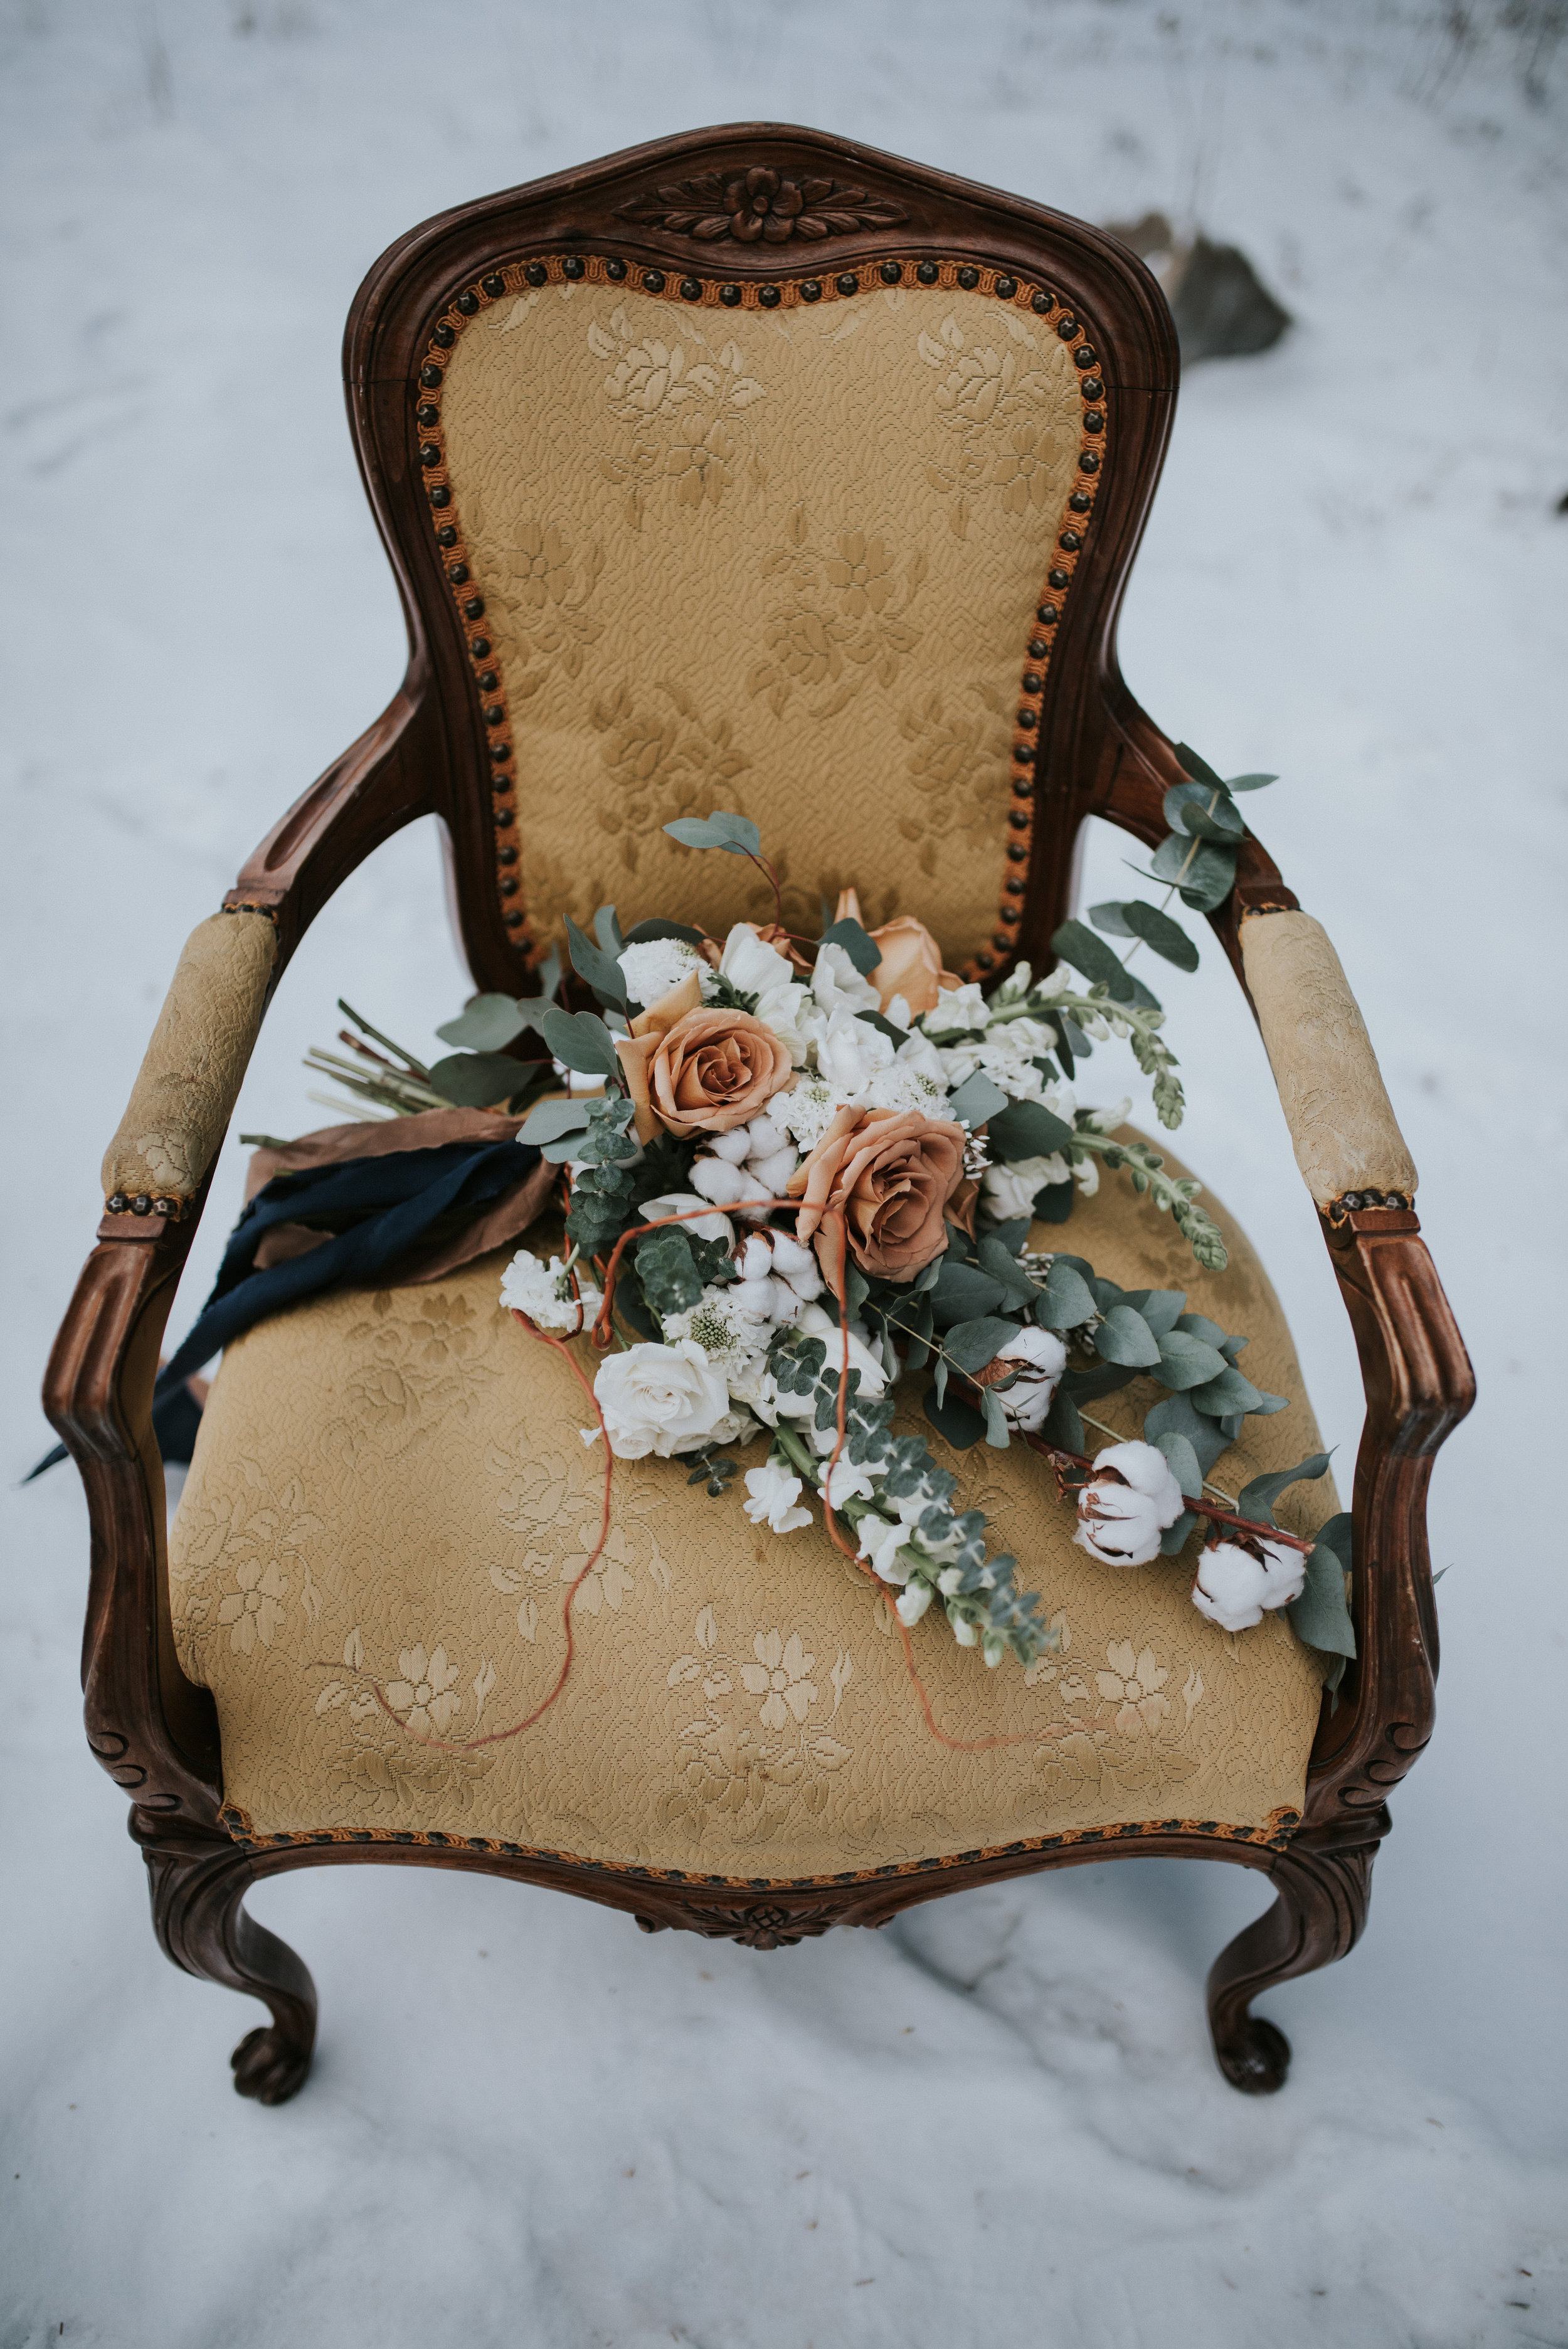 calgary wedding bouquet parlor chairs winter wedding inspiration